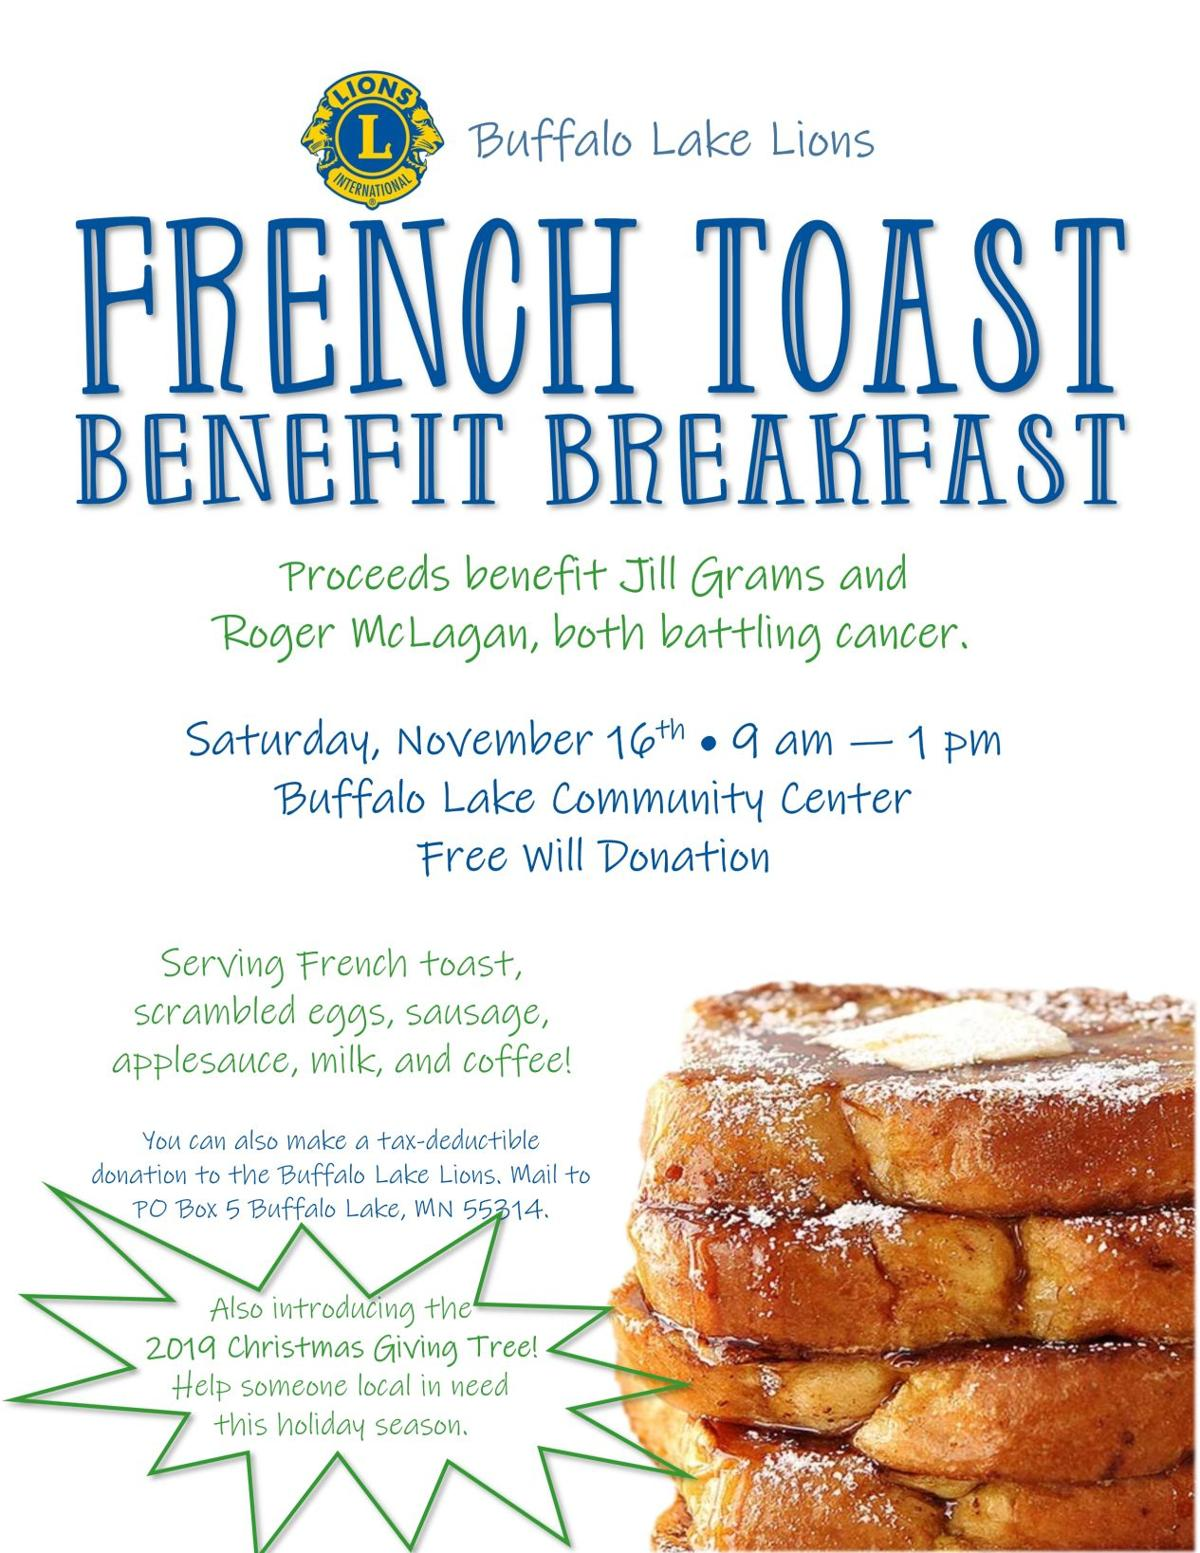 French Toast Benefit Breakfast